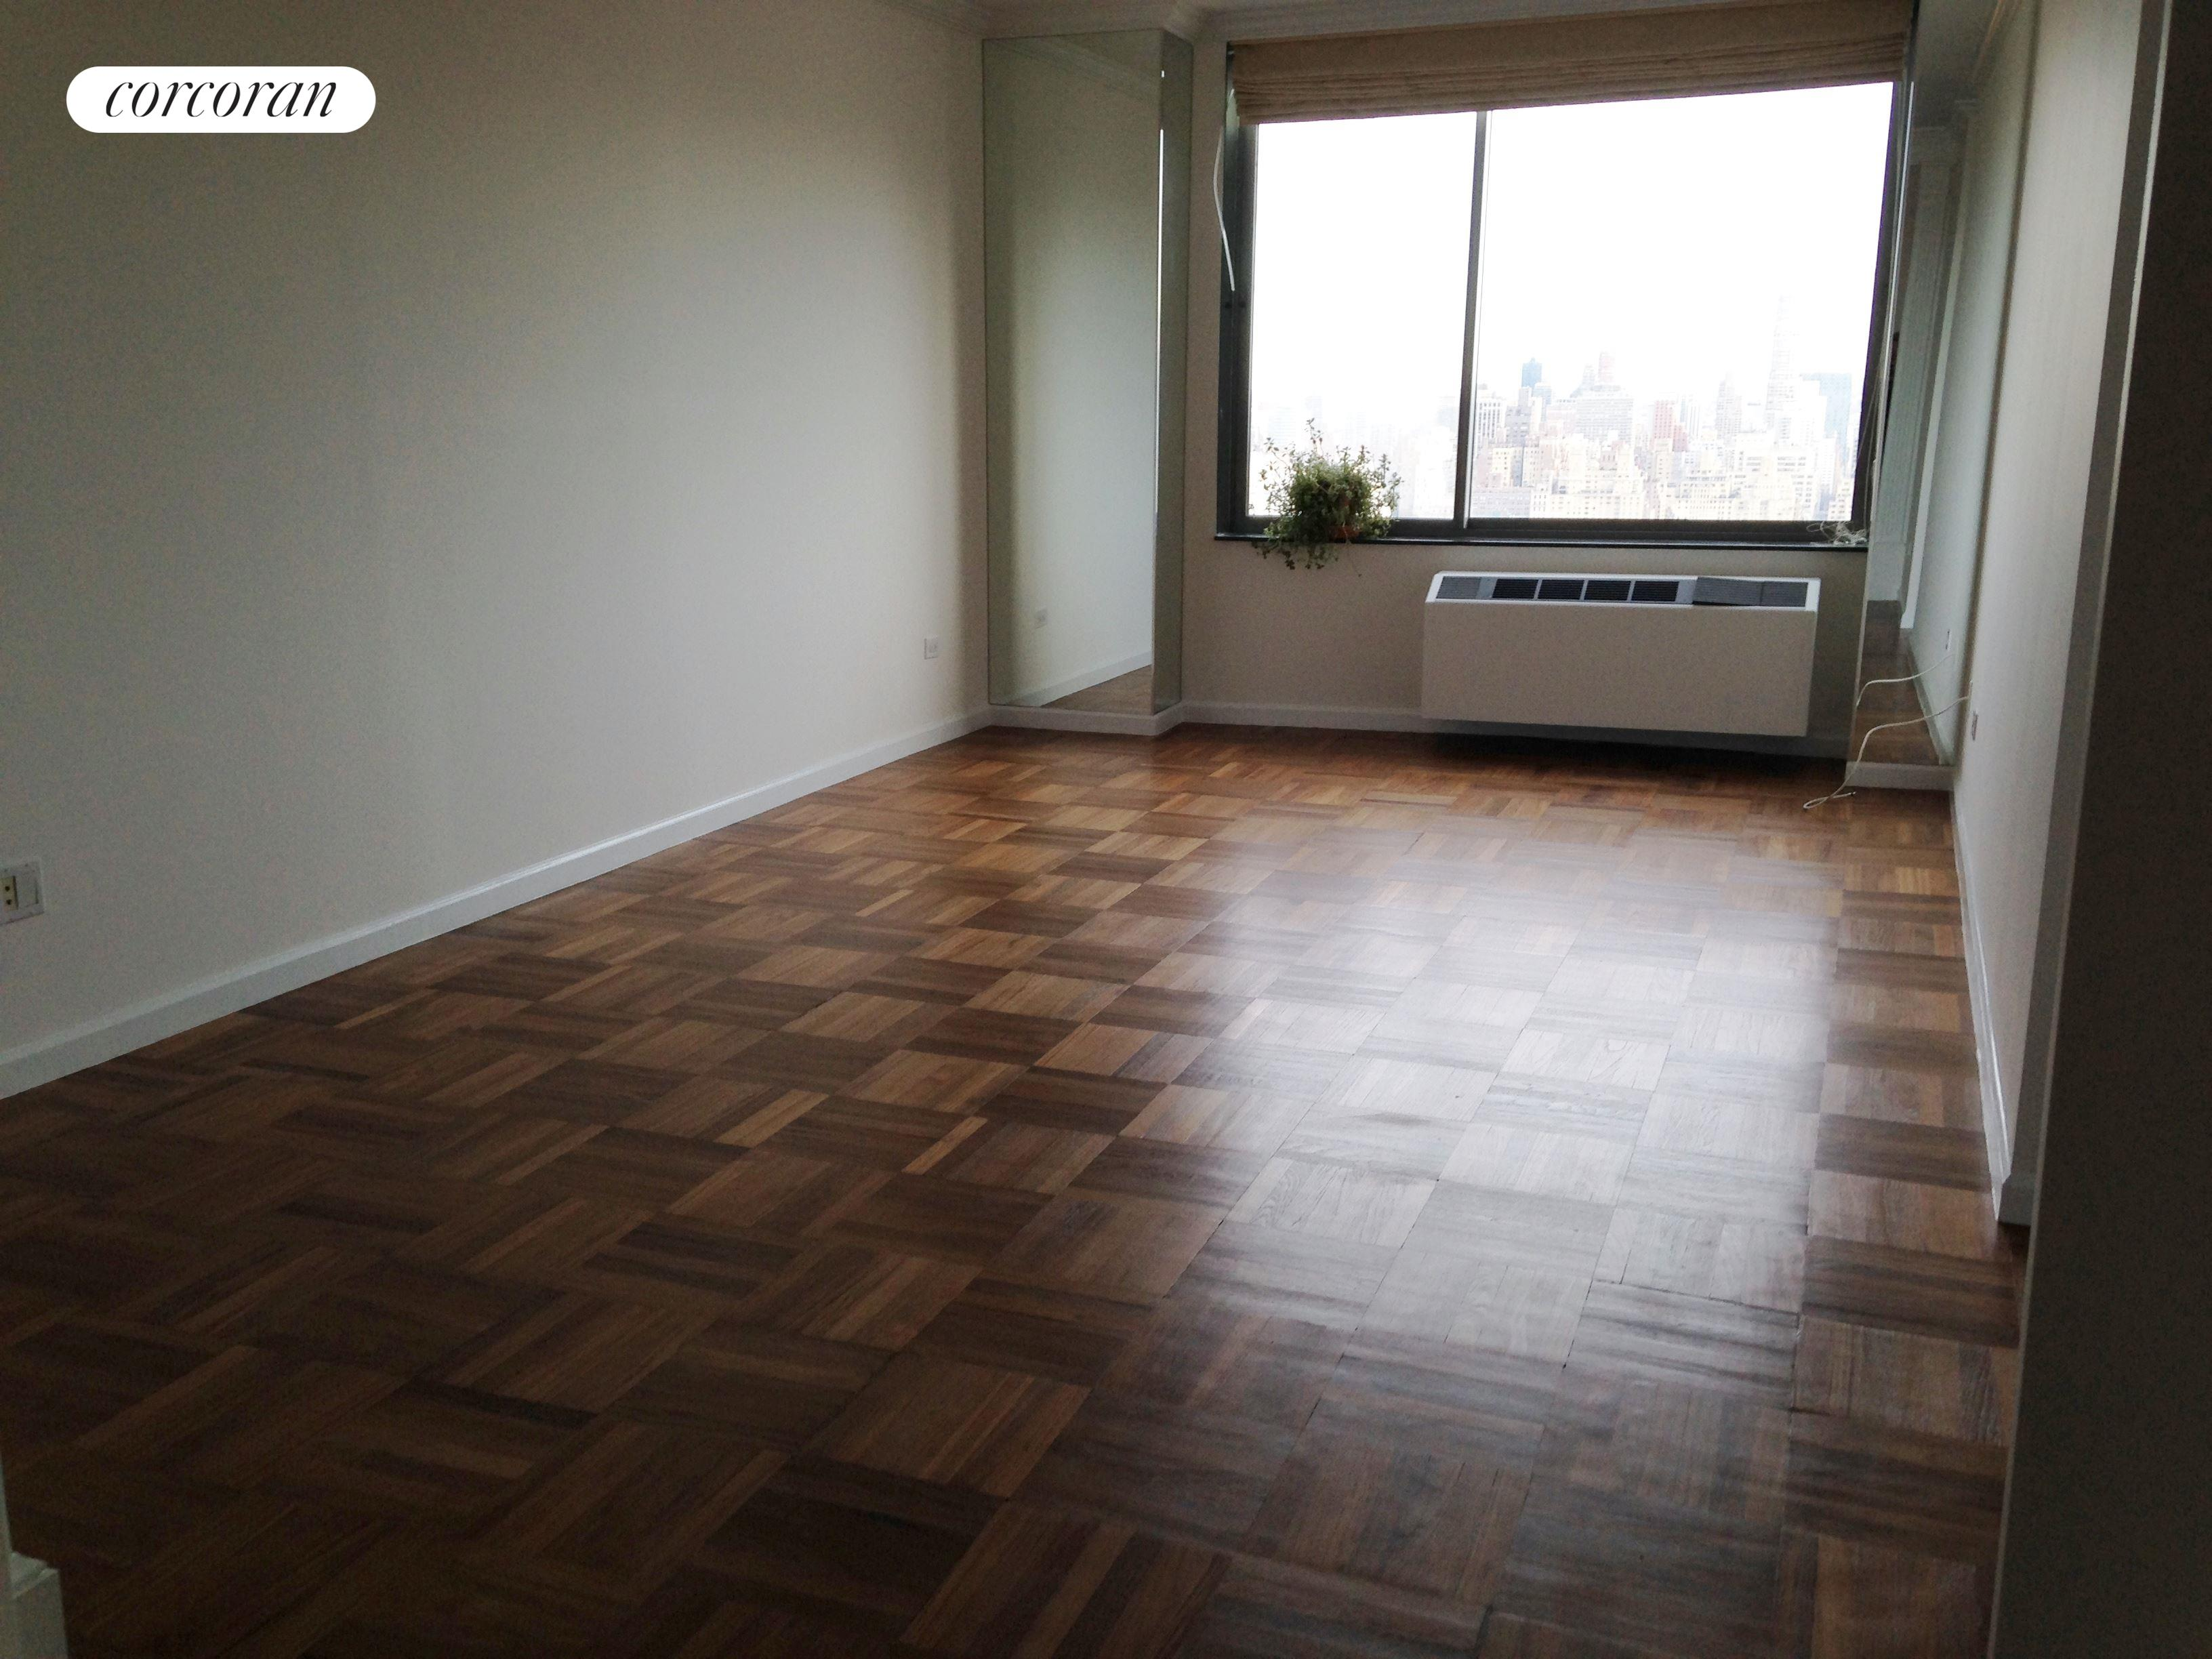 Corcoran 111 west 67th street apt 41f upper west side for 111 broadway 2nd floor